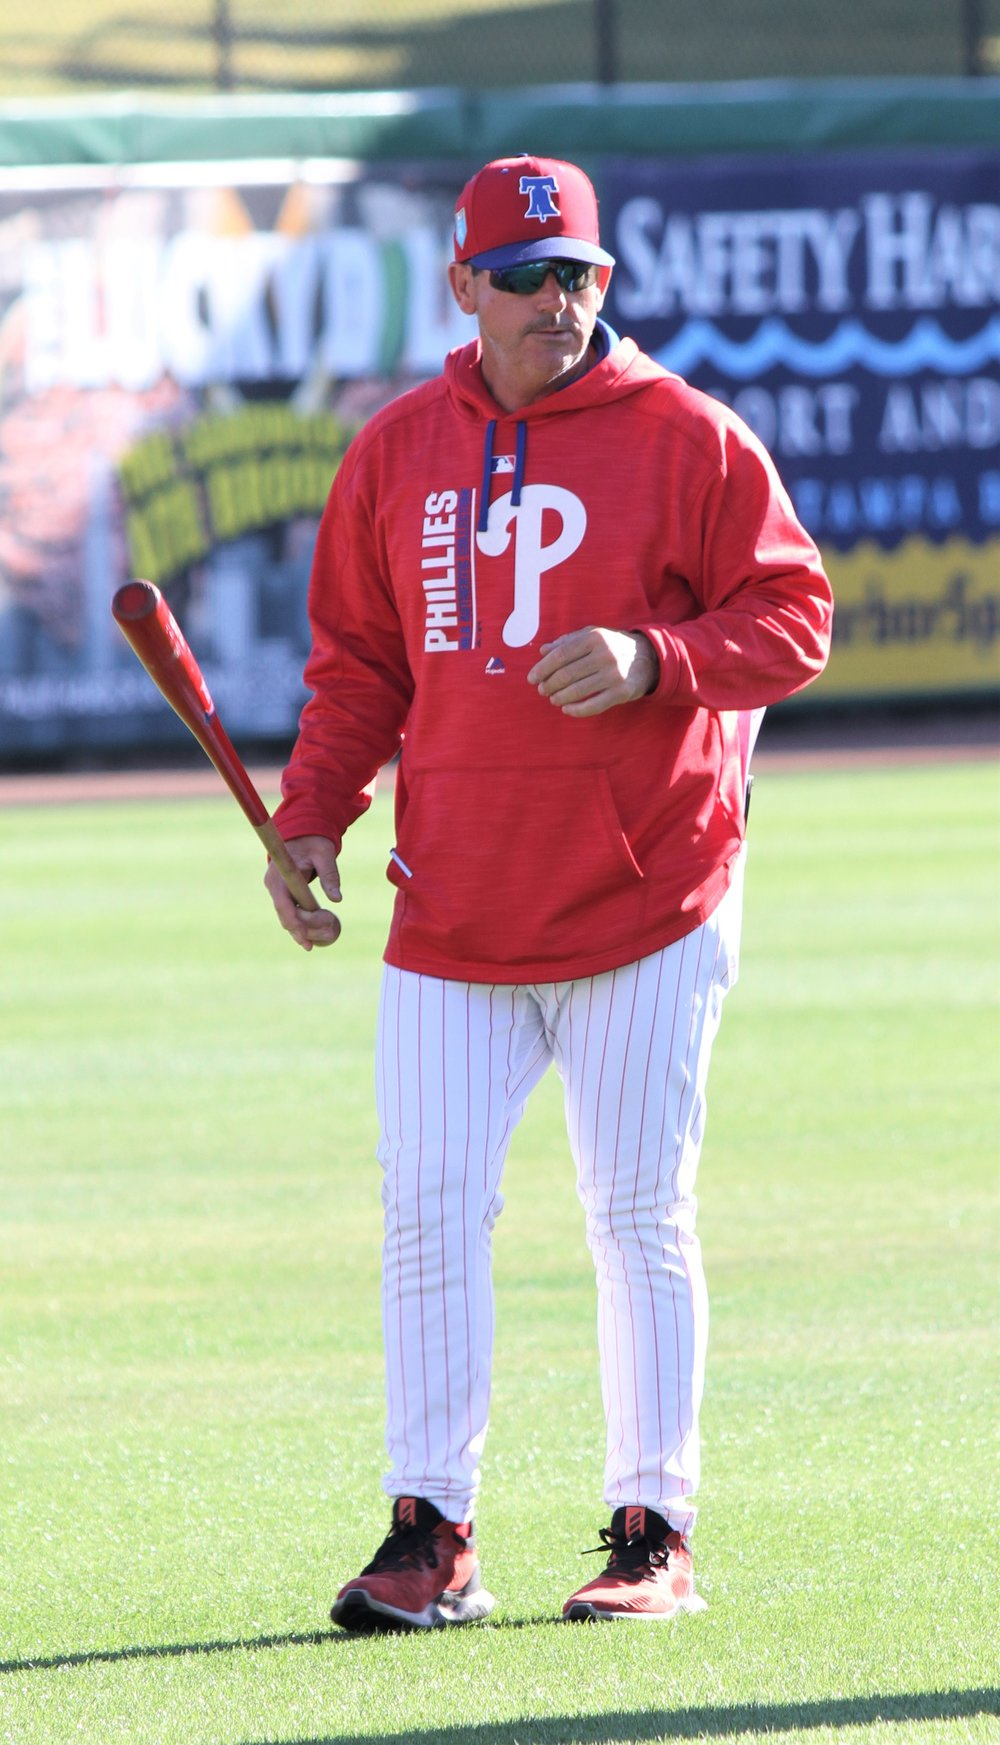 Philadelphia Phillies' bench coach Rob Thomson (Corunna, Ont.) has impressed his new club with his ability to connect with the players. Photos: Matt Antonacci